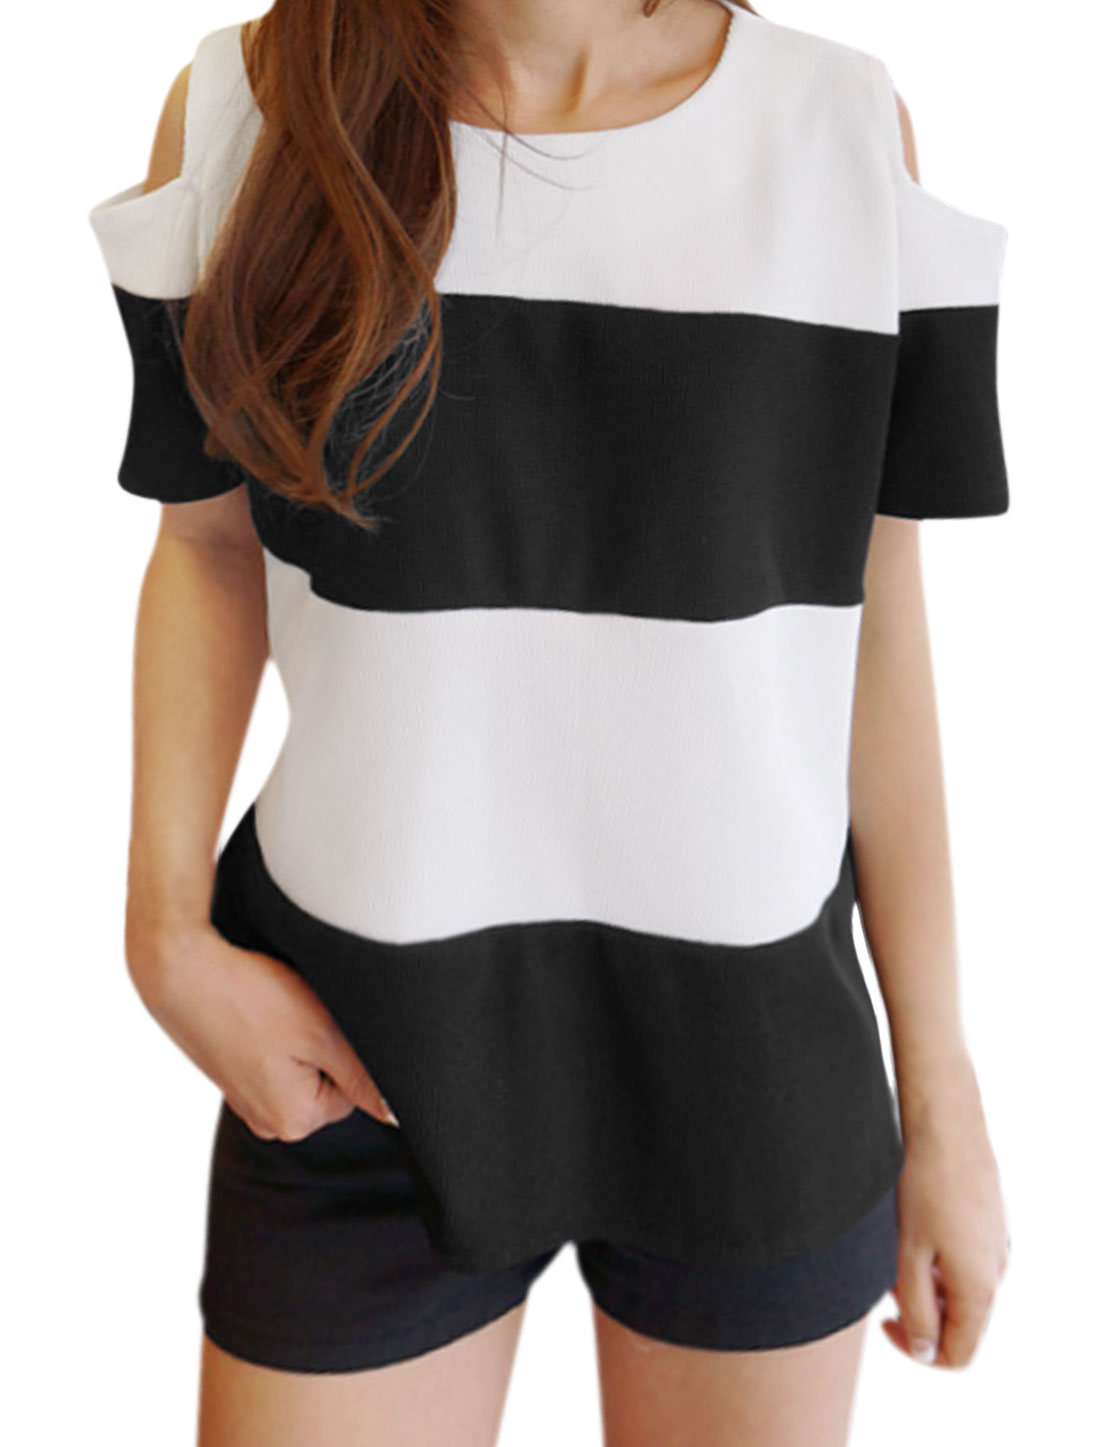 Women Cut Out Shoulder Stripes Hi-Lo Top Black White XS